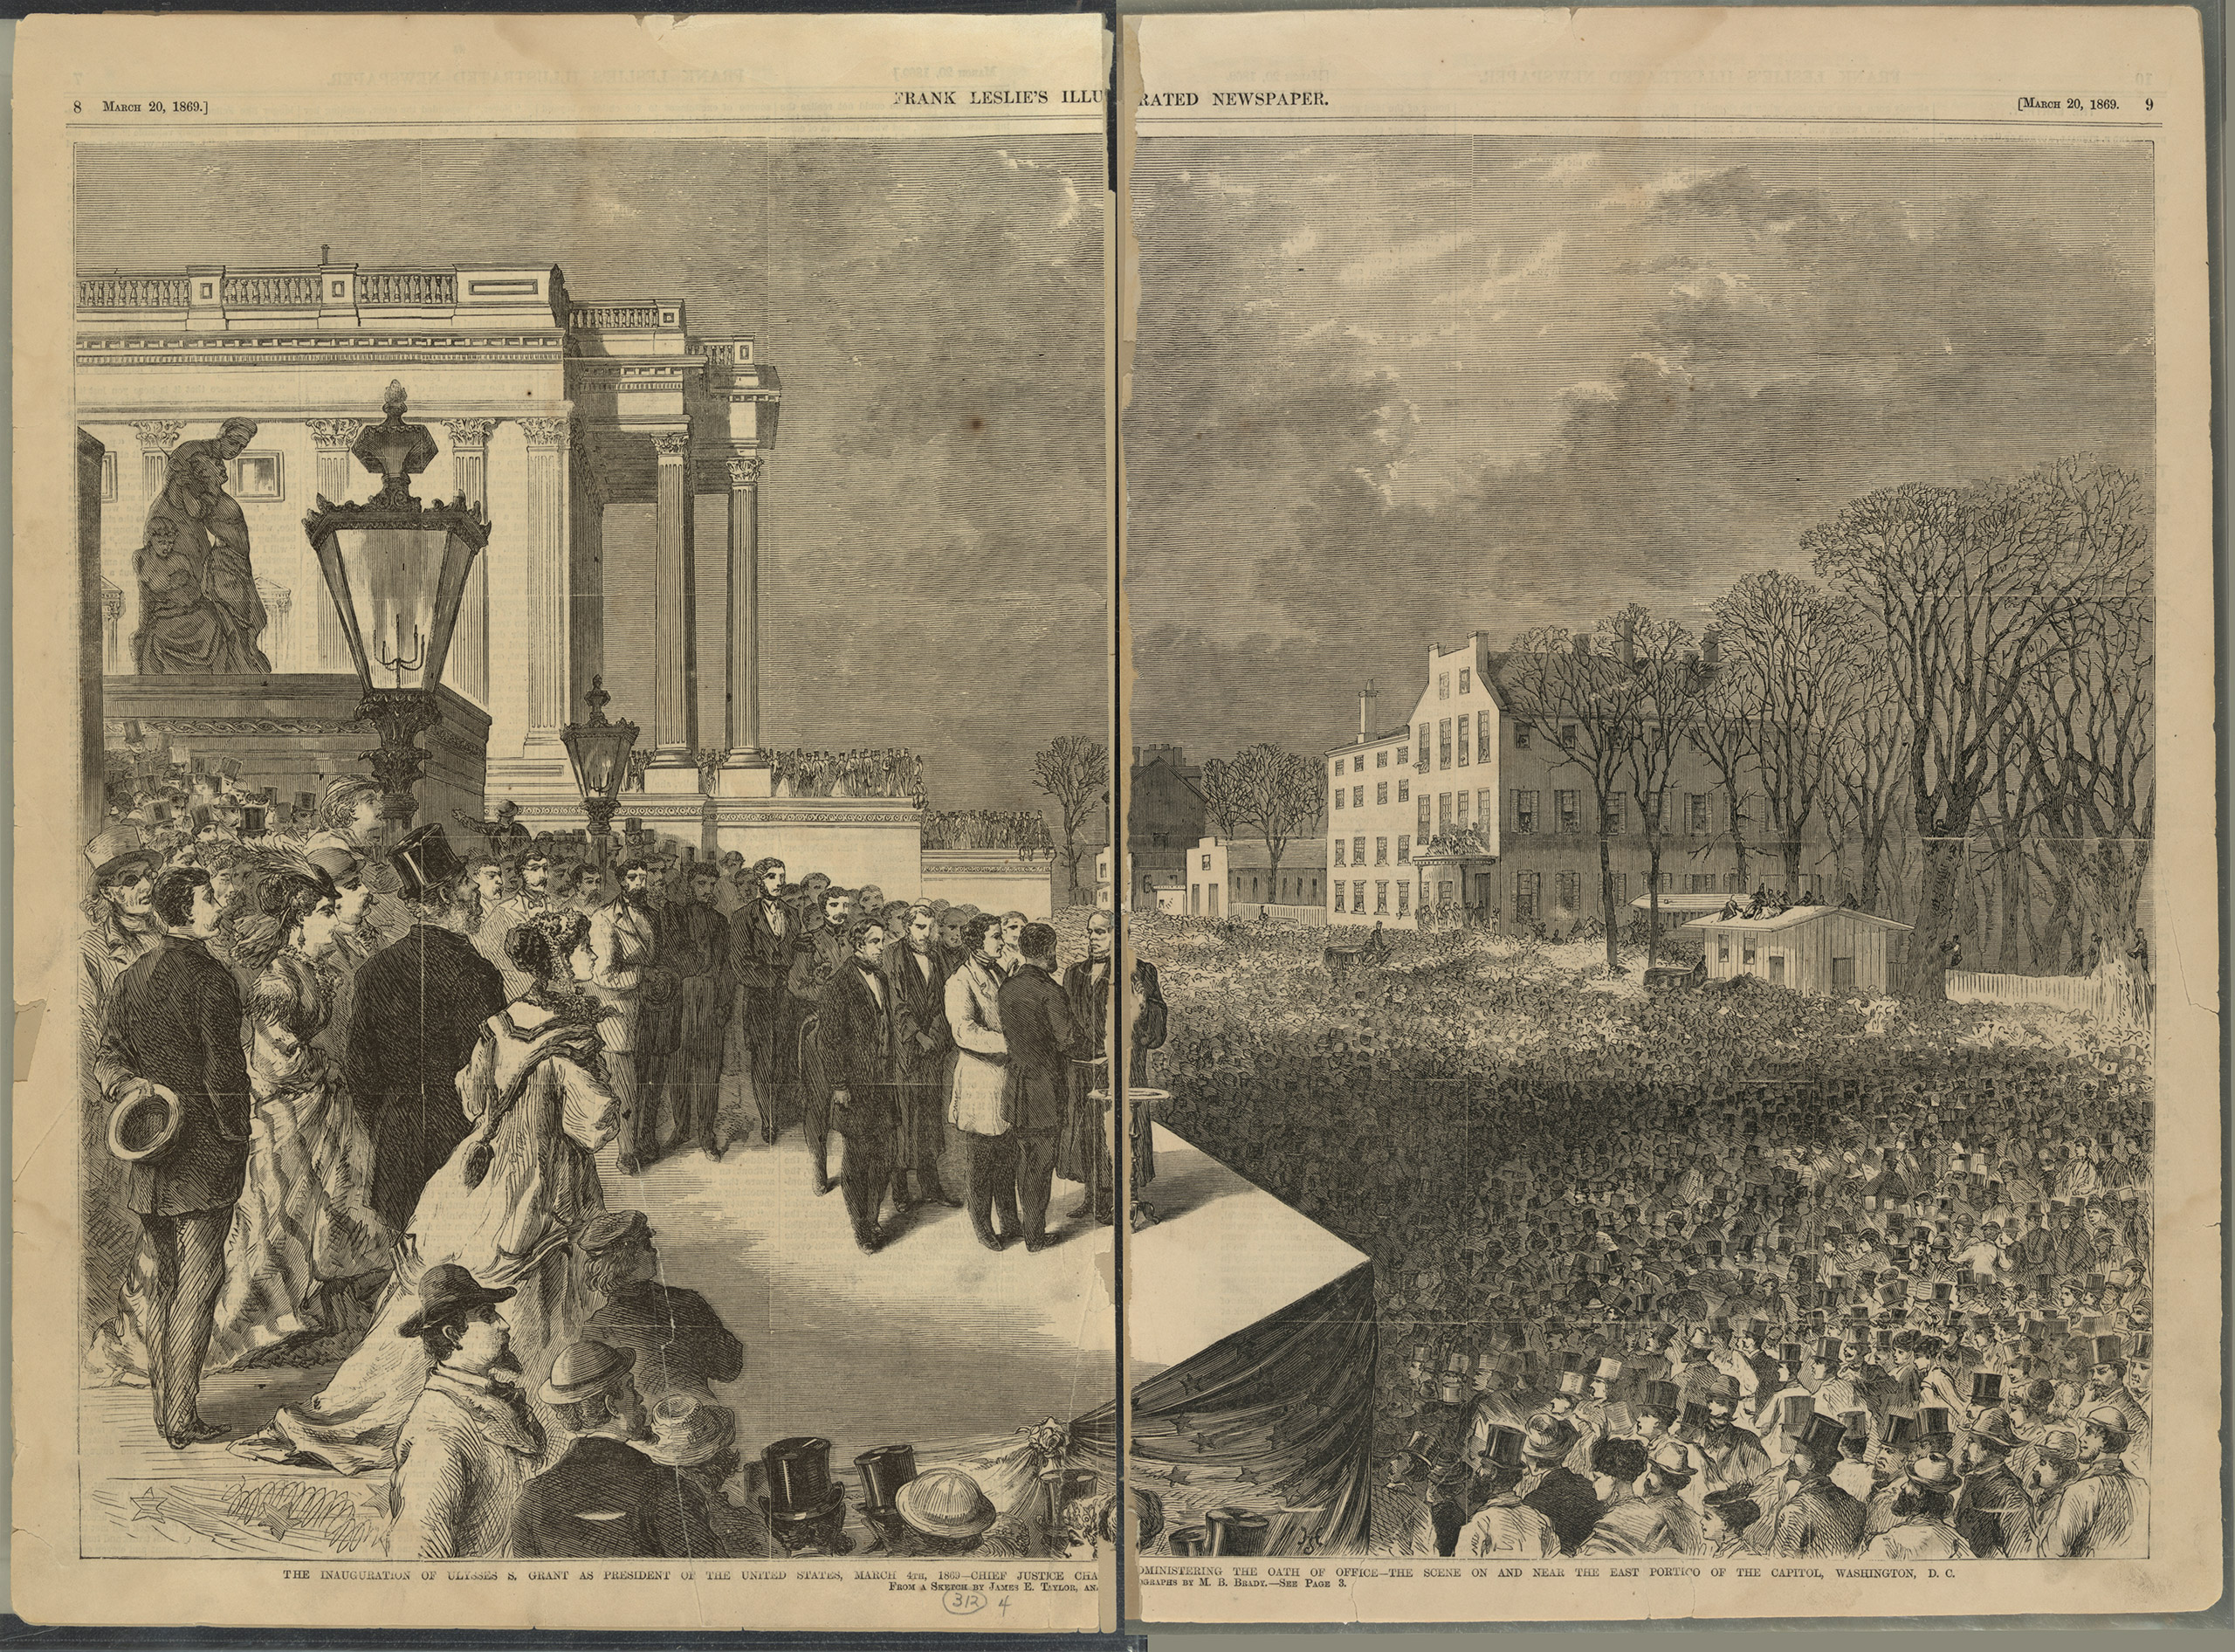 Ulysses S. Grant and Schuyler Colfax taking the oath of office administered by Chief Justice Salmon P. Chase on the east portico of the U.S. Capitol in Washington, D.C., March 4th 1869, before a large crowd.